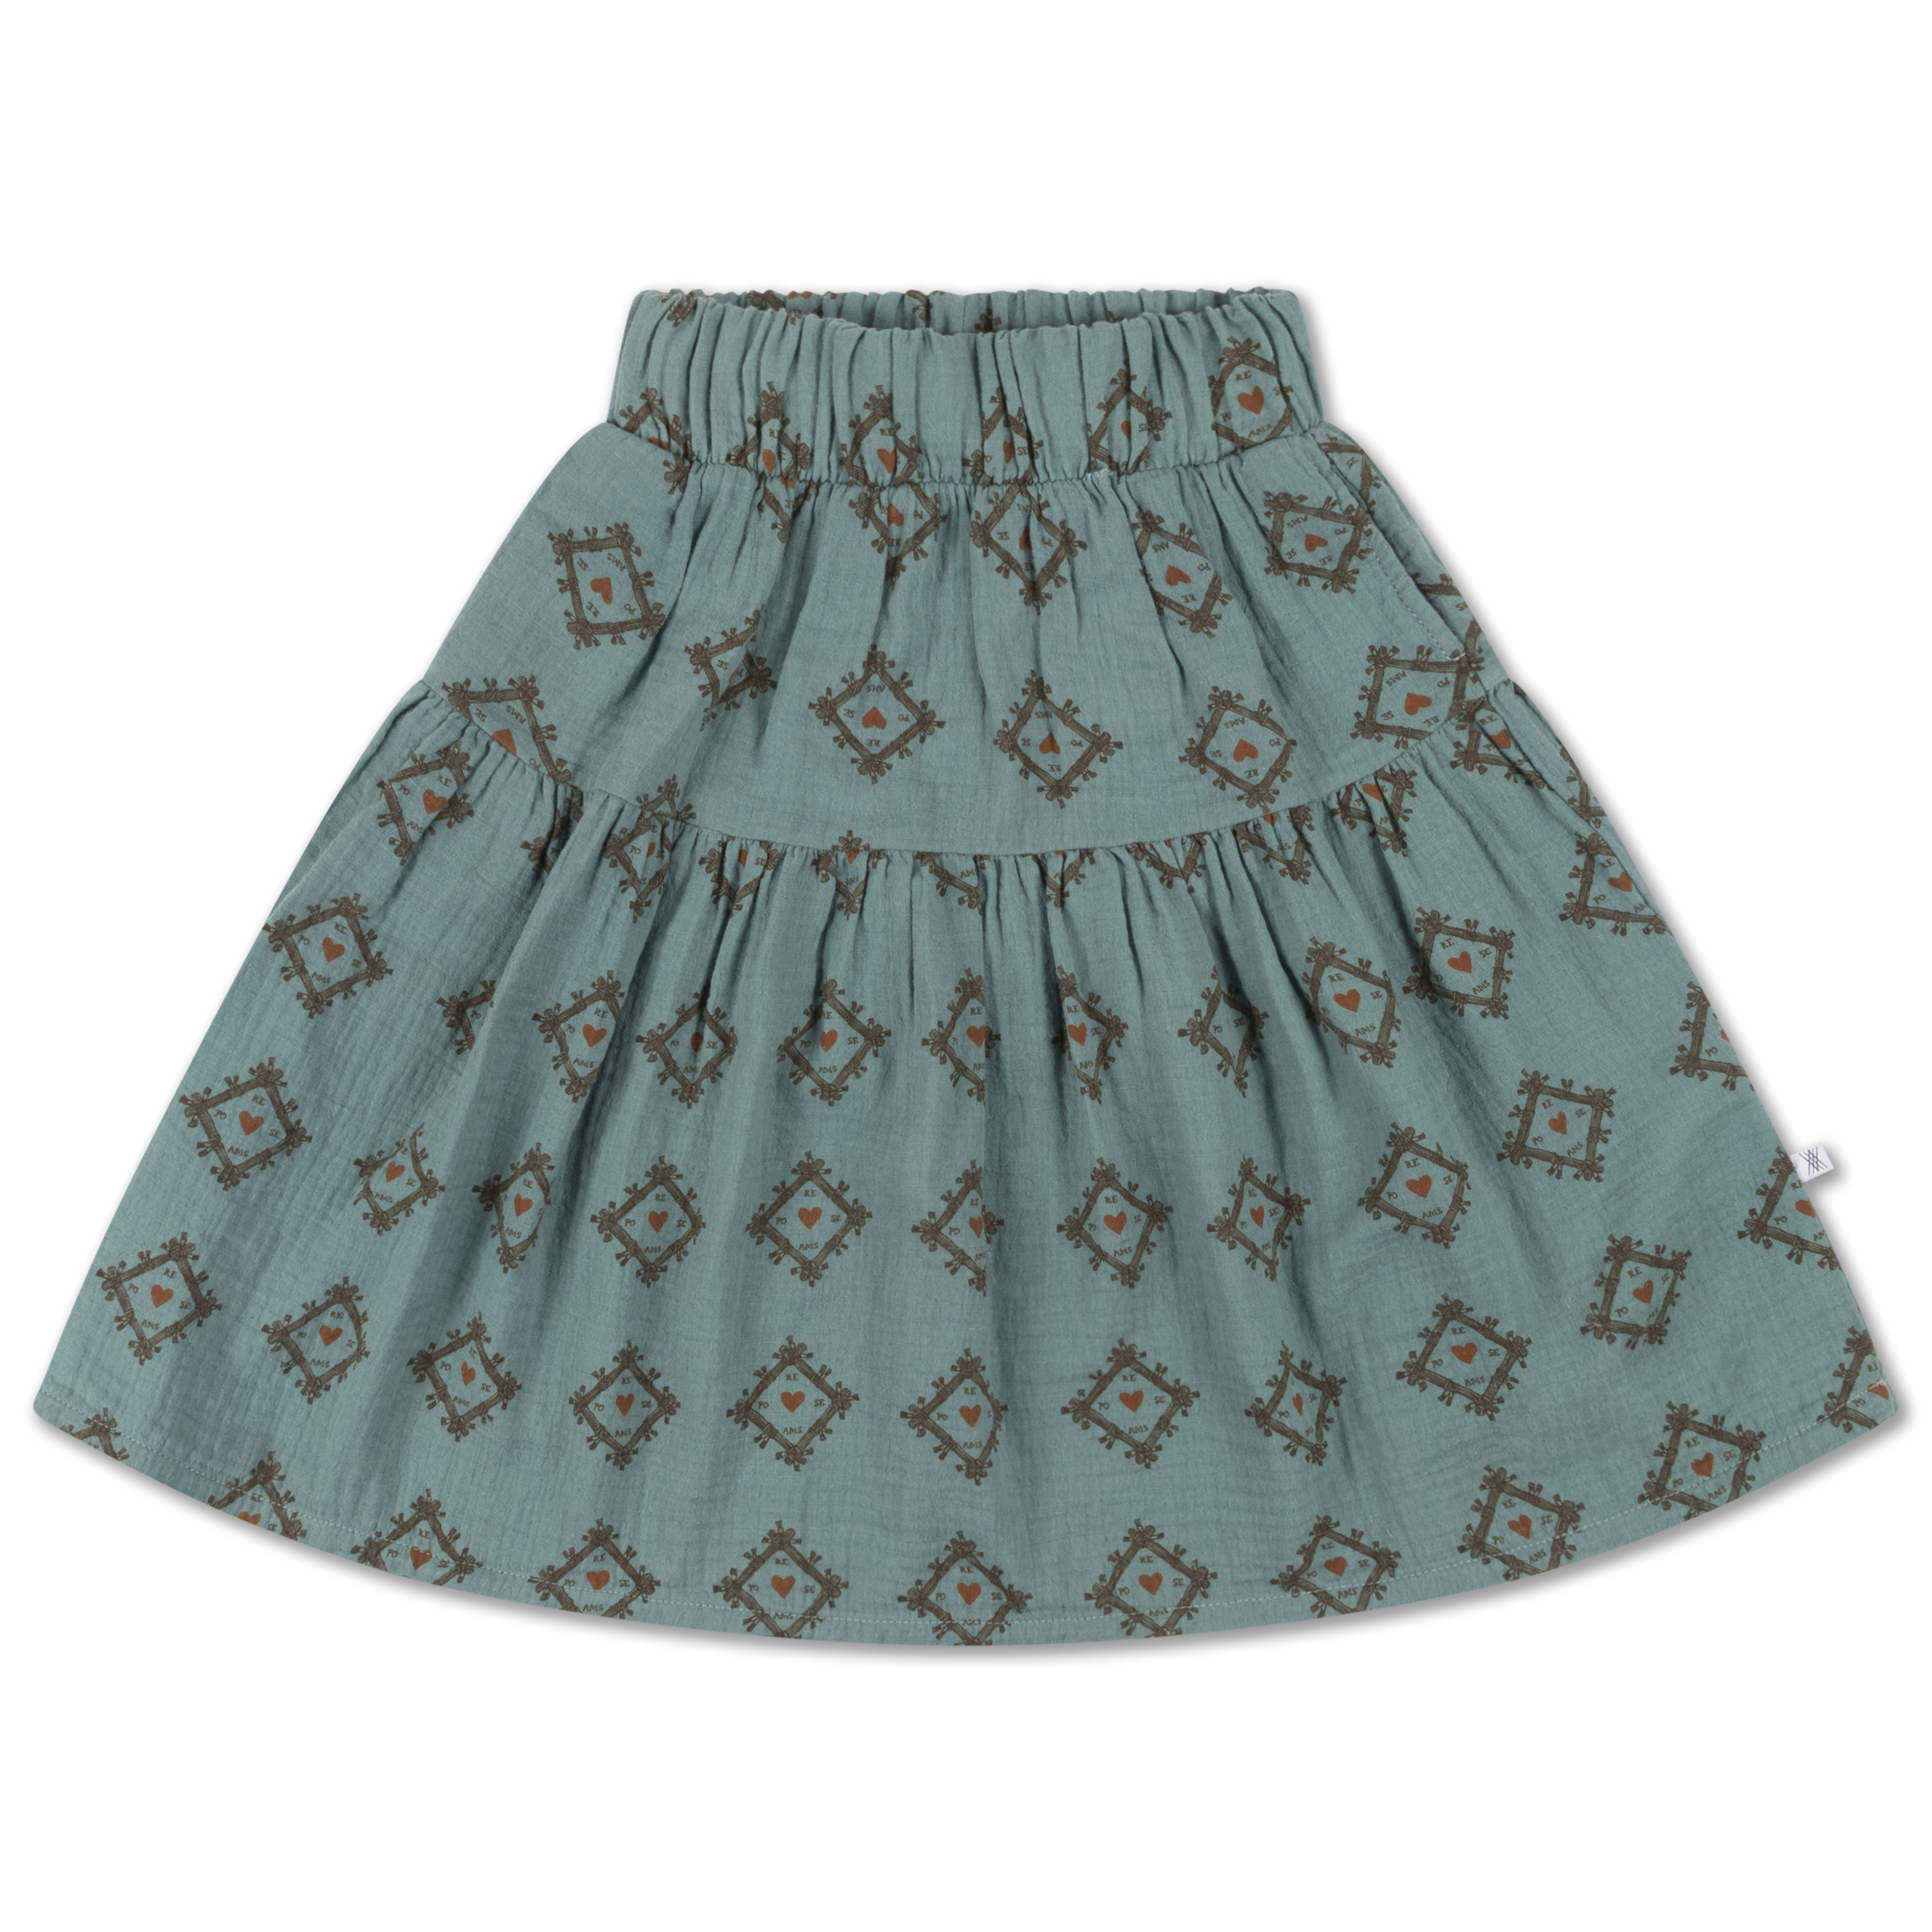 Repose AMS - Midi Skirt tiles heart all over